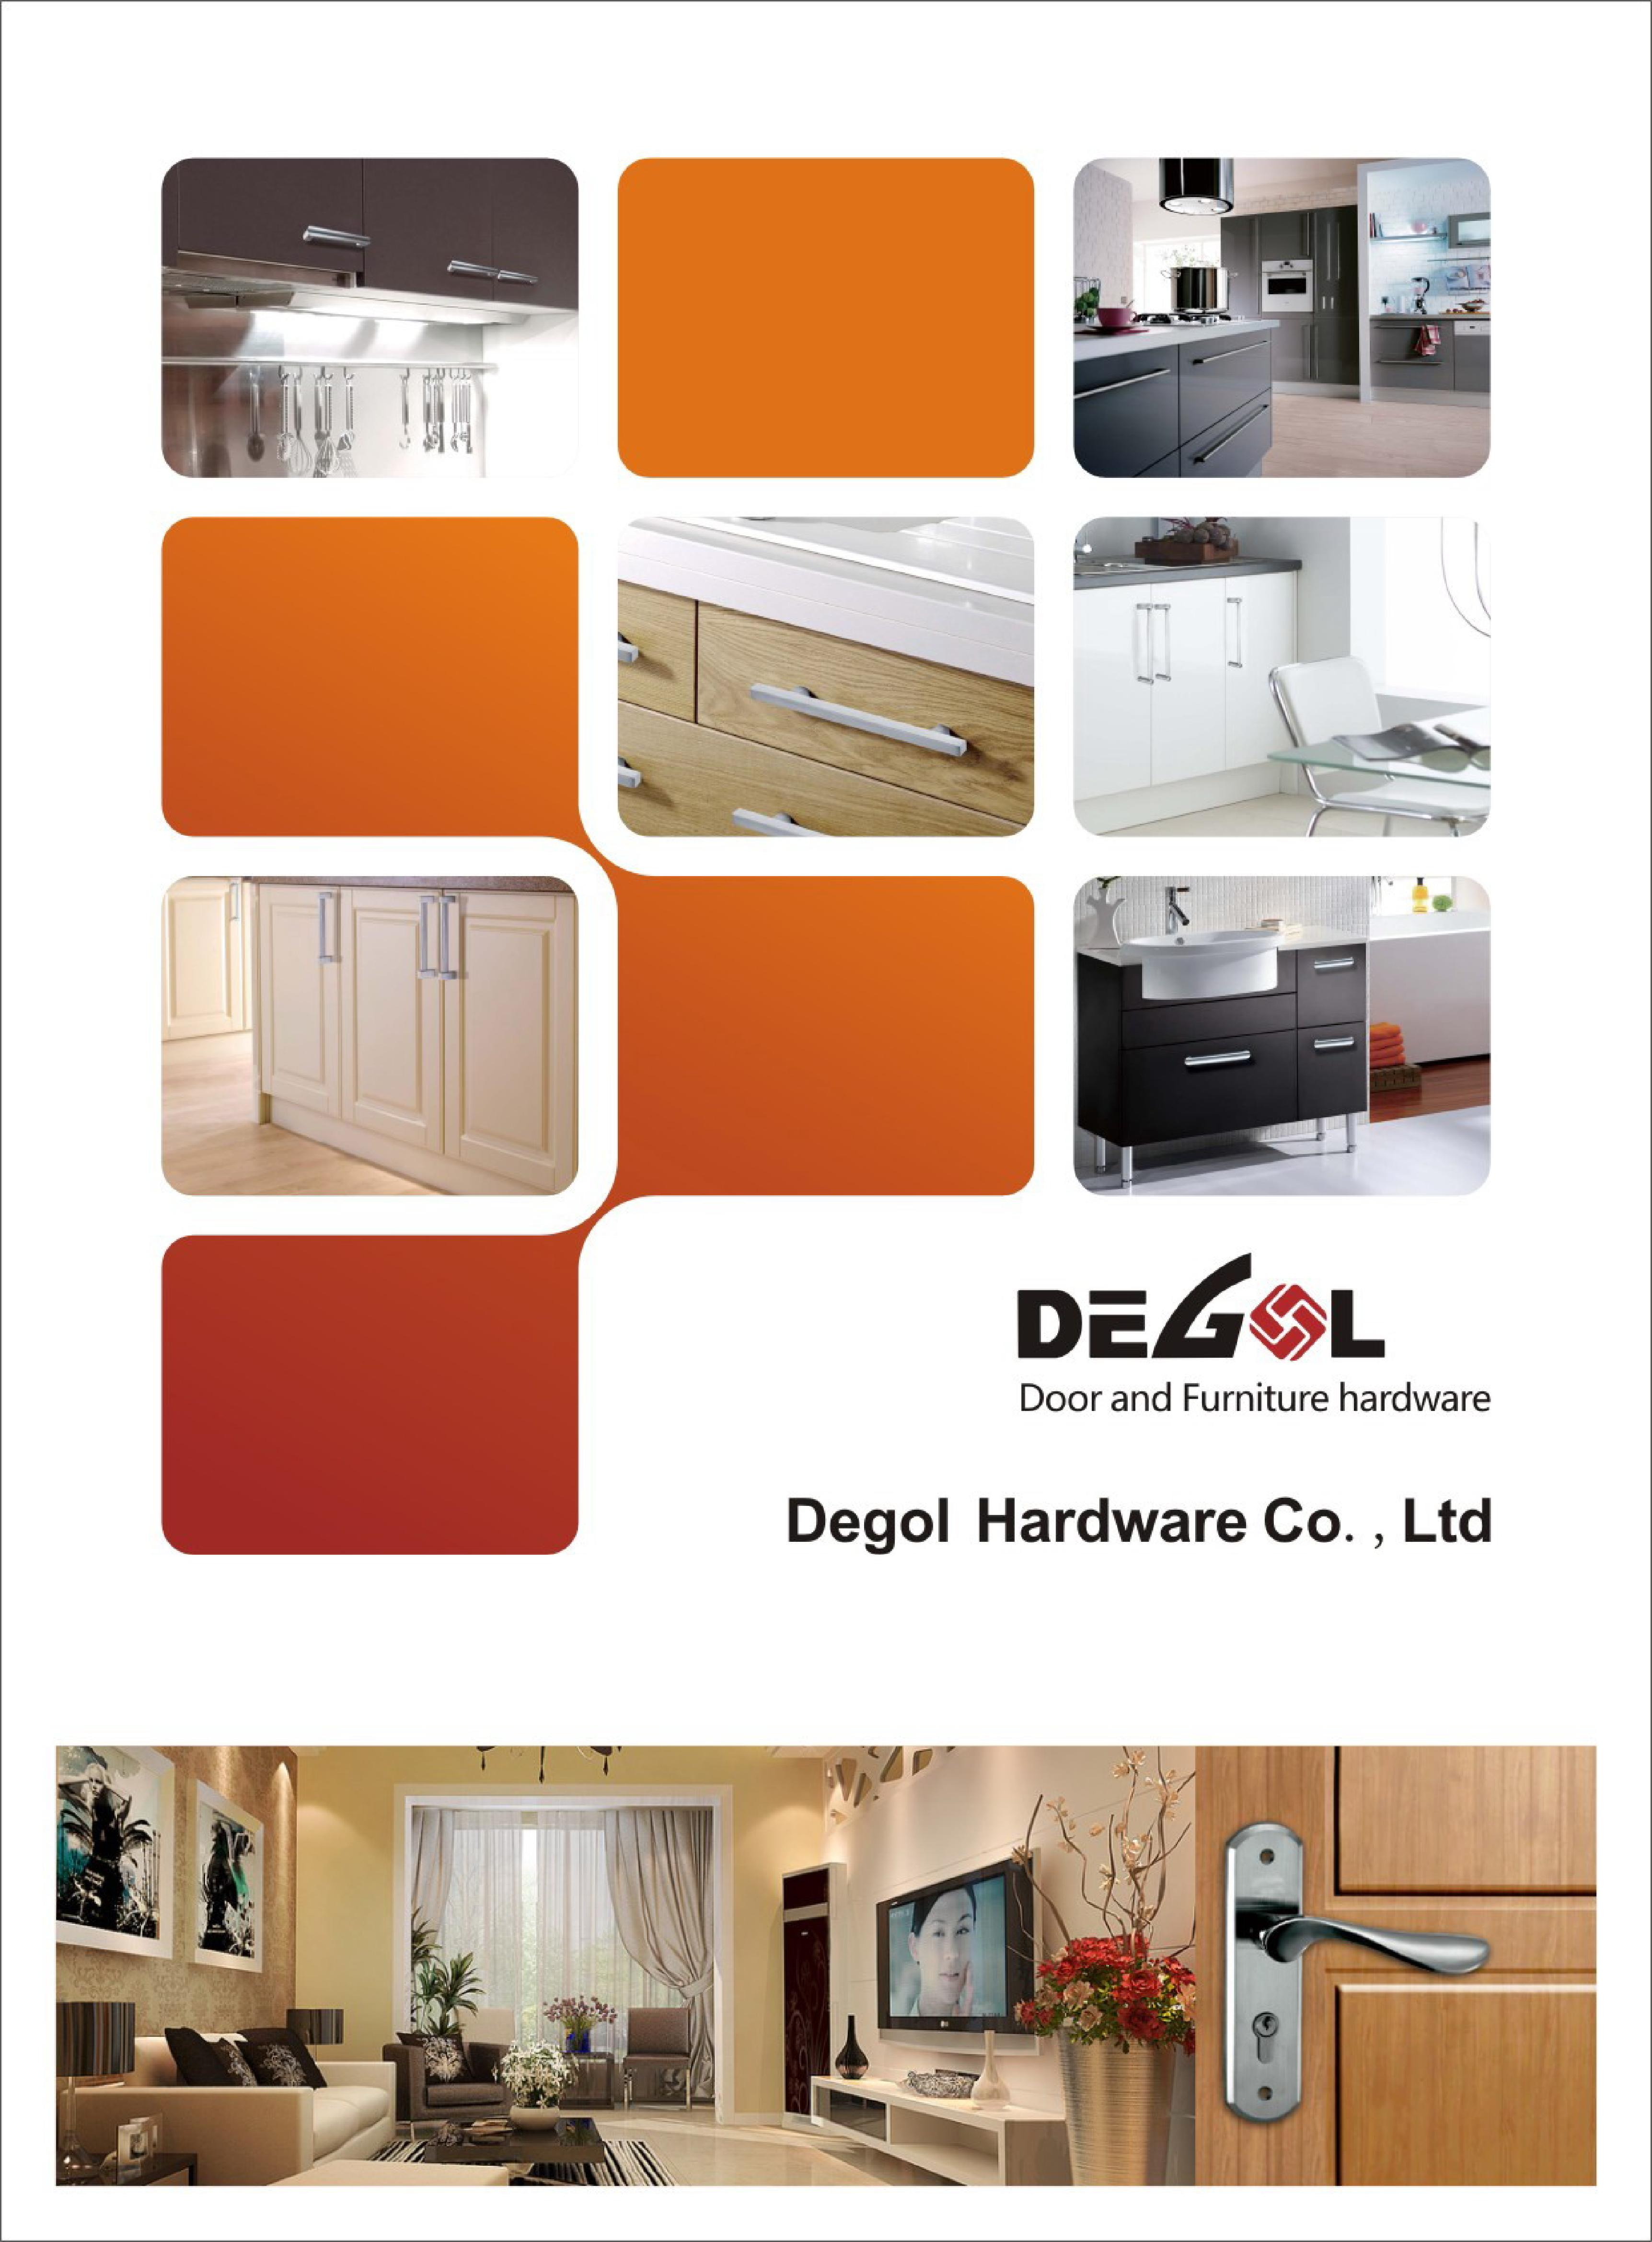 Degol door and furniture Catalogue_0.jpg